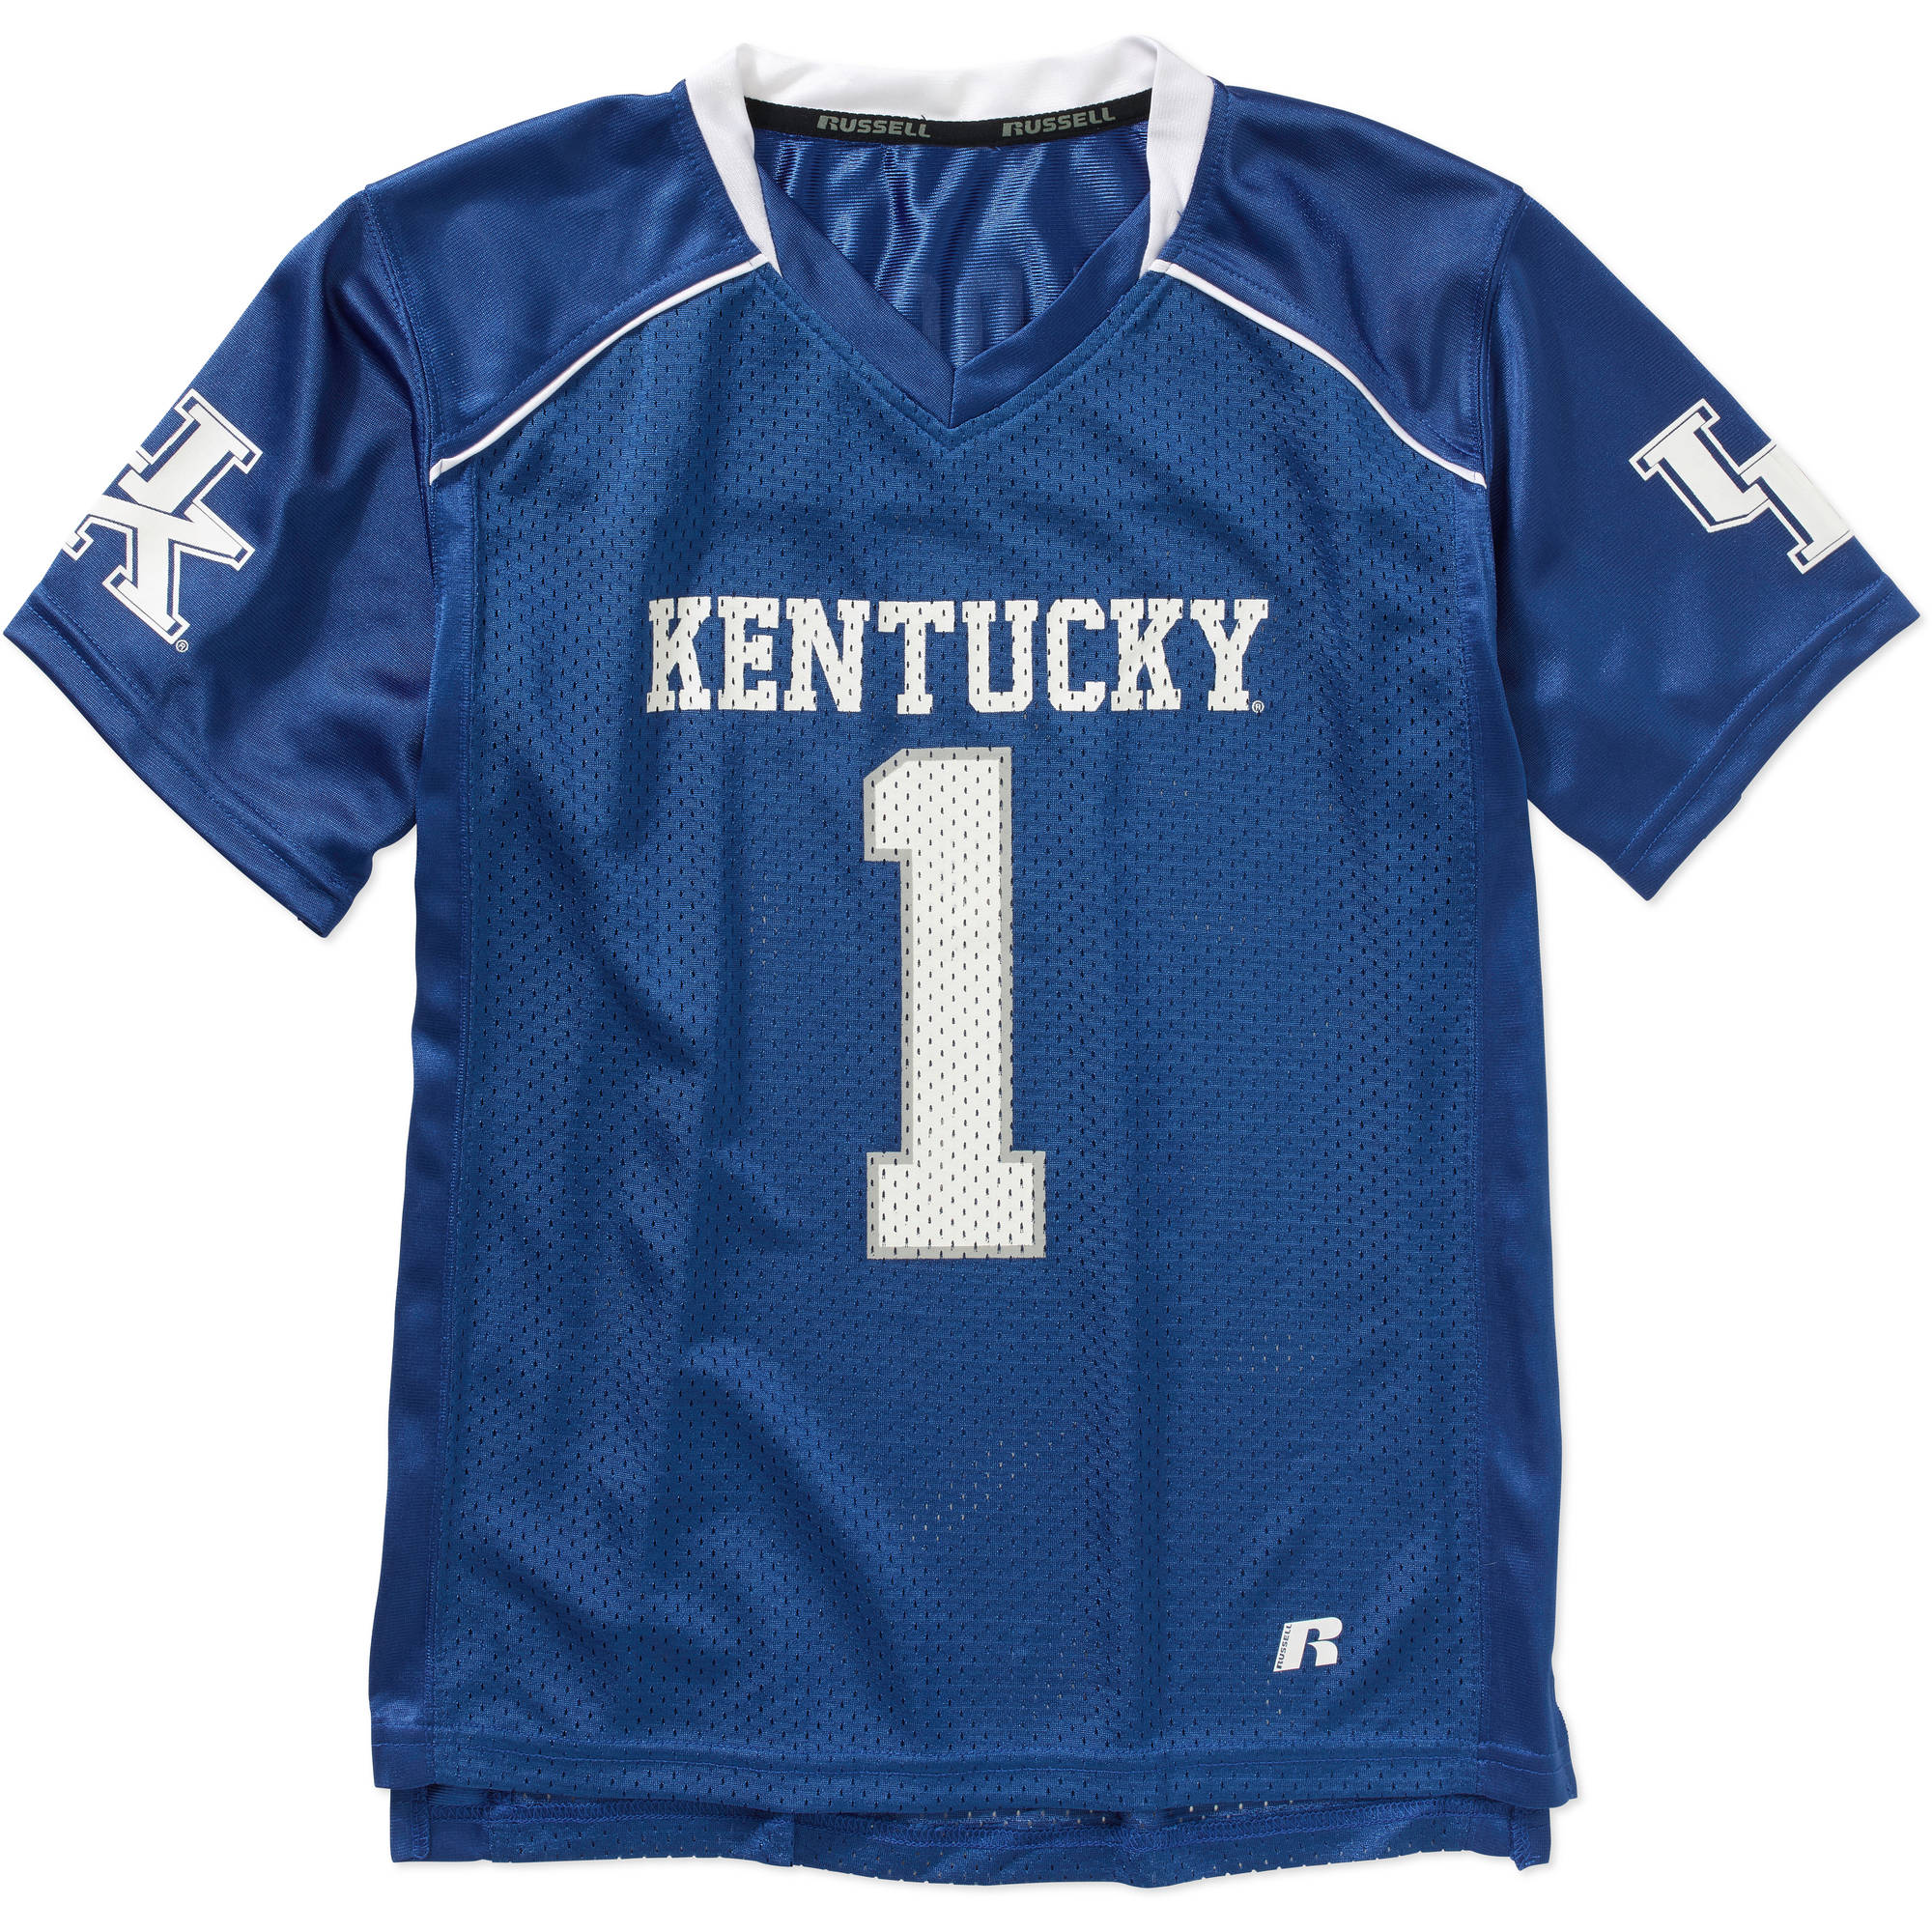 Russell NCAA Kentucky Wildcats Boys Short Sleeve Replica Jersey